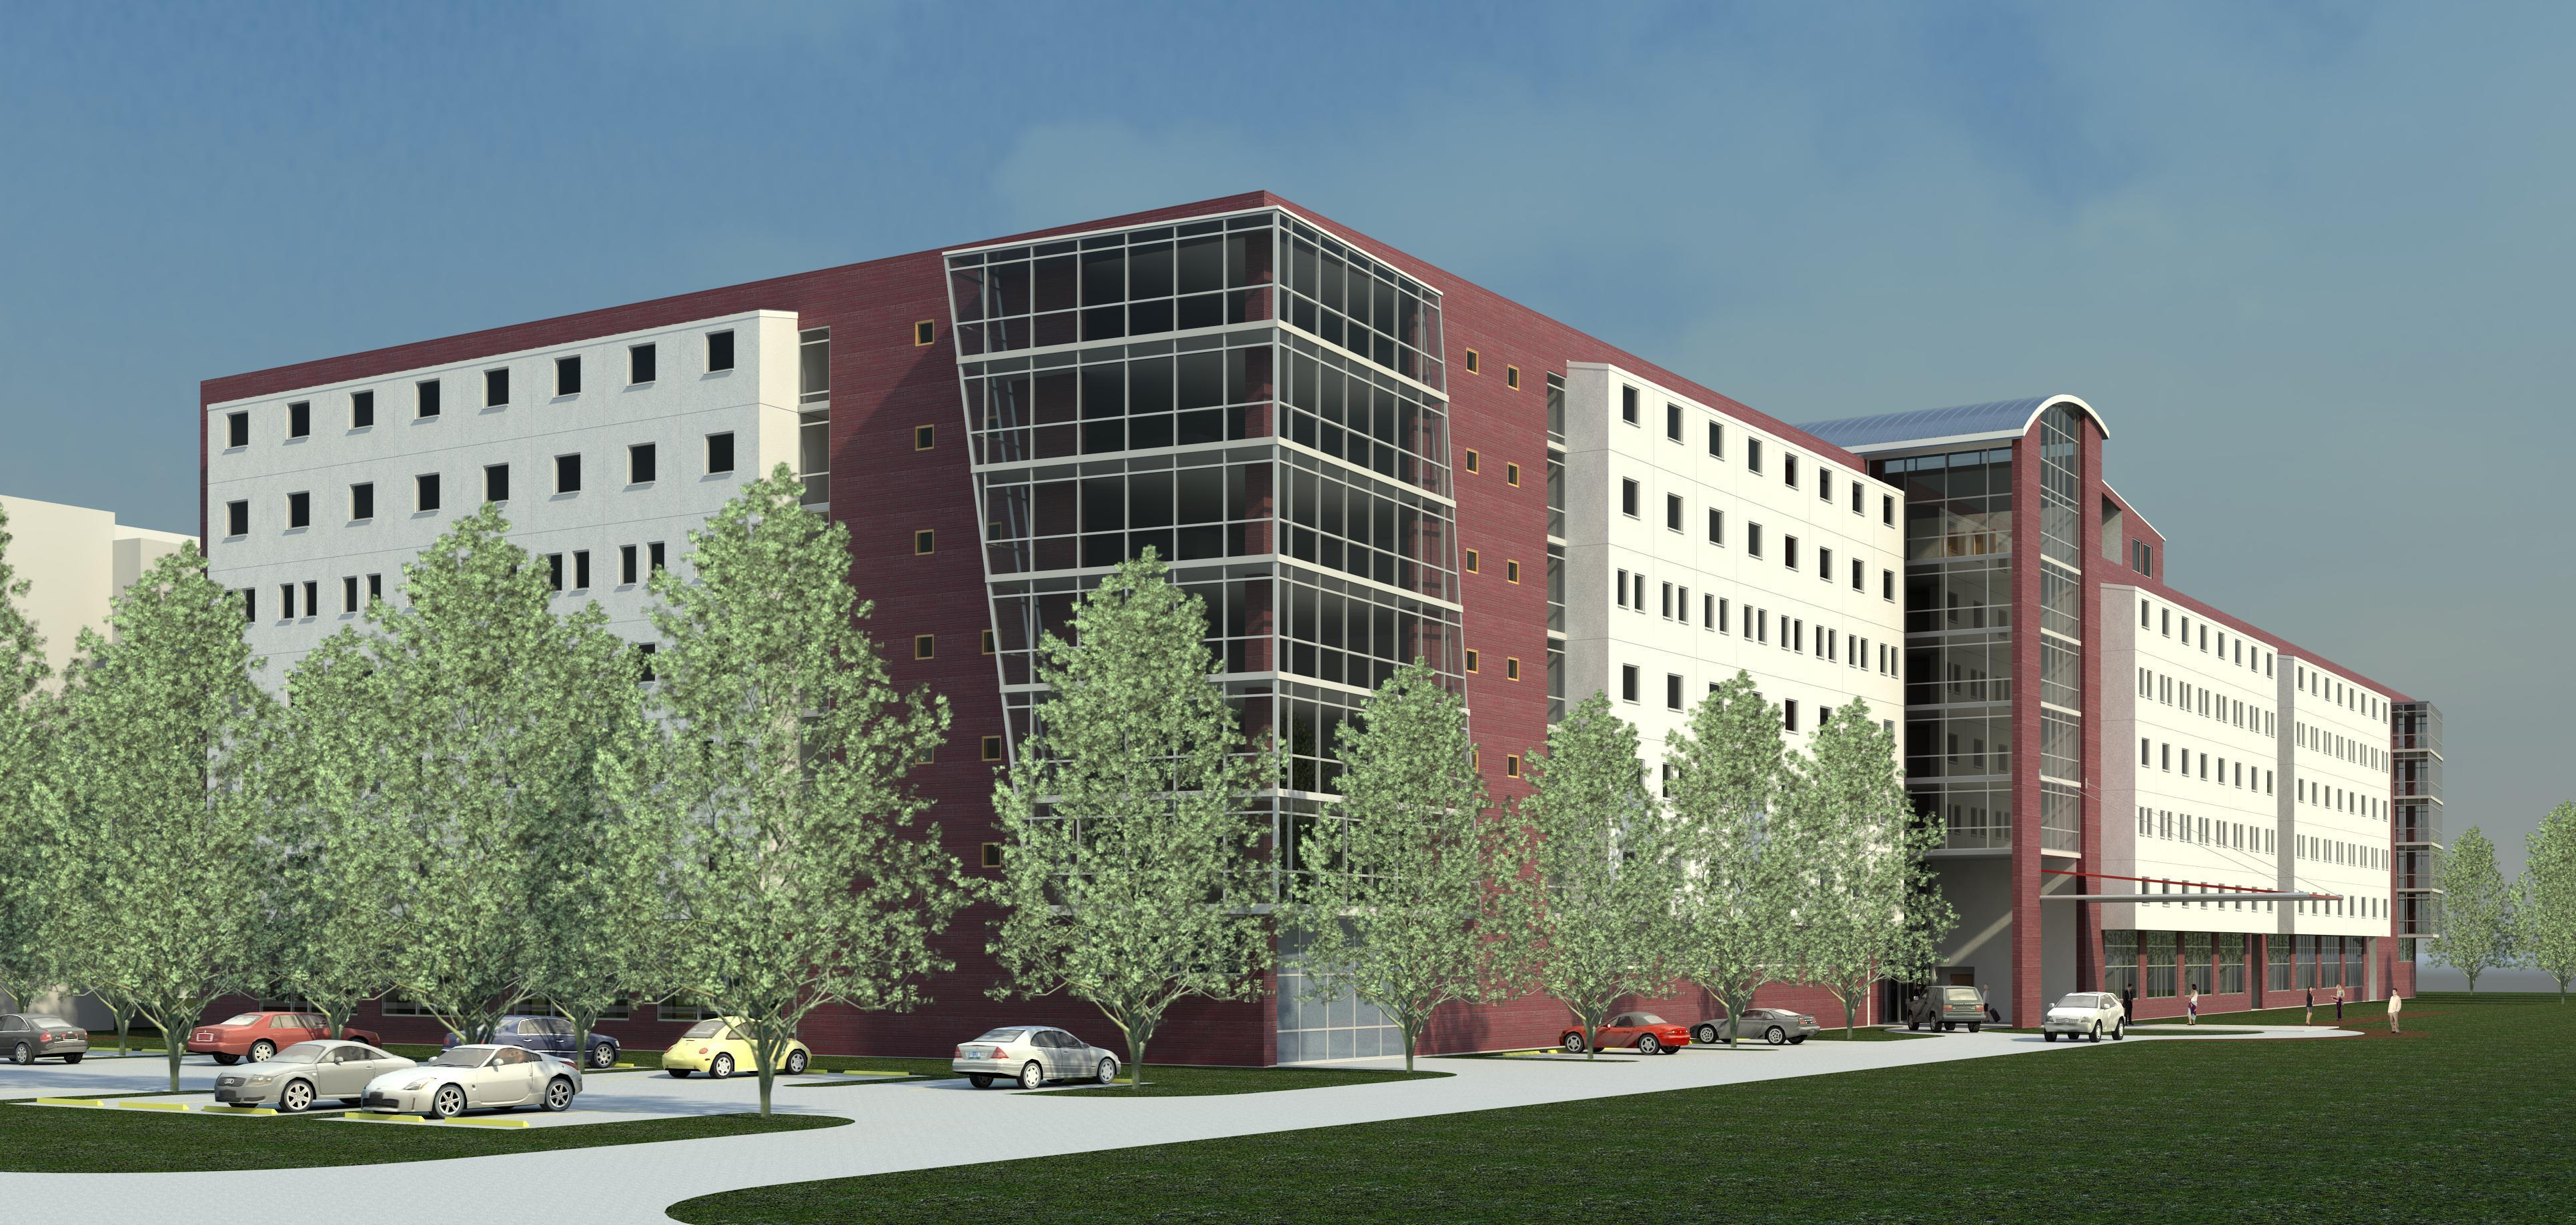 hardin construction selected to build university of